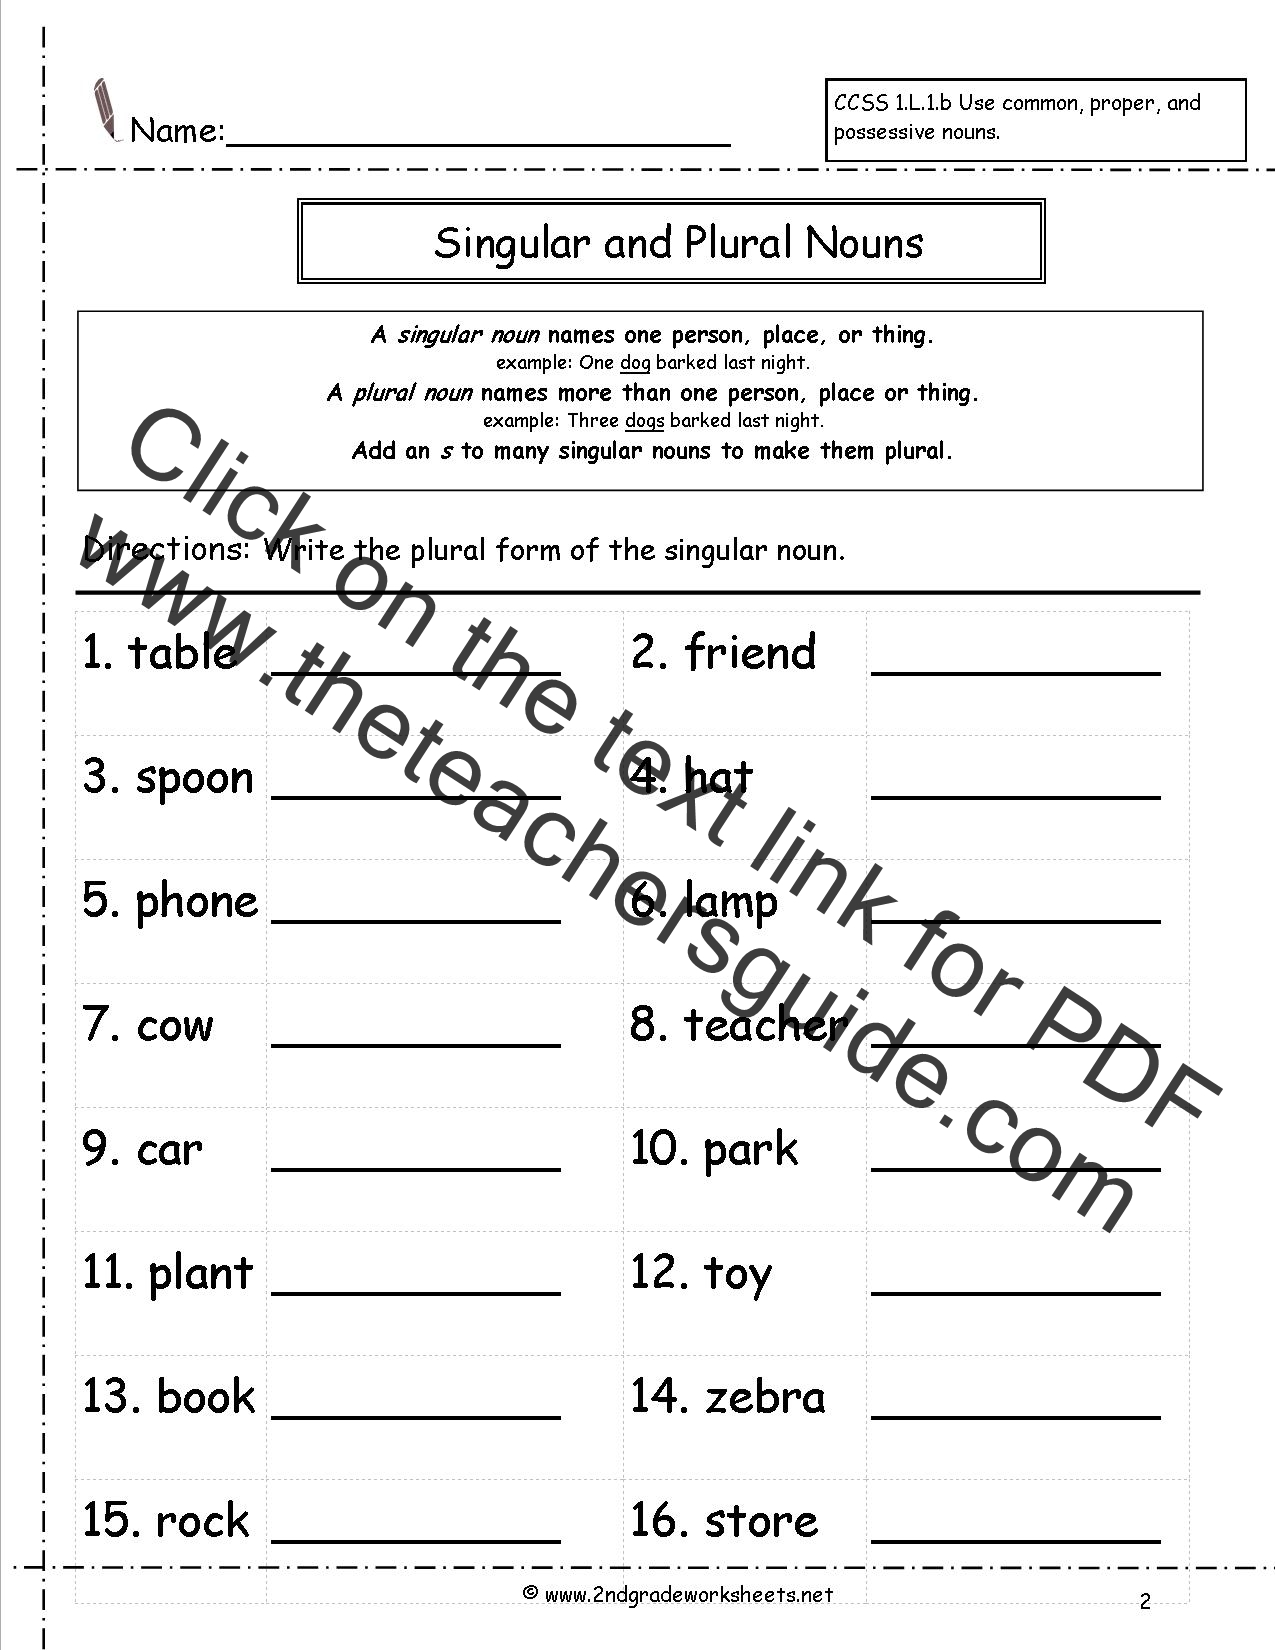 Worksheets Plural Noun Worksheets singular and plural nouns worksheets worksheet